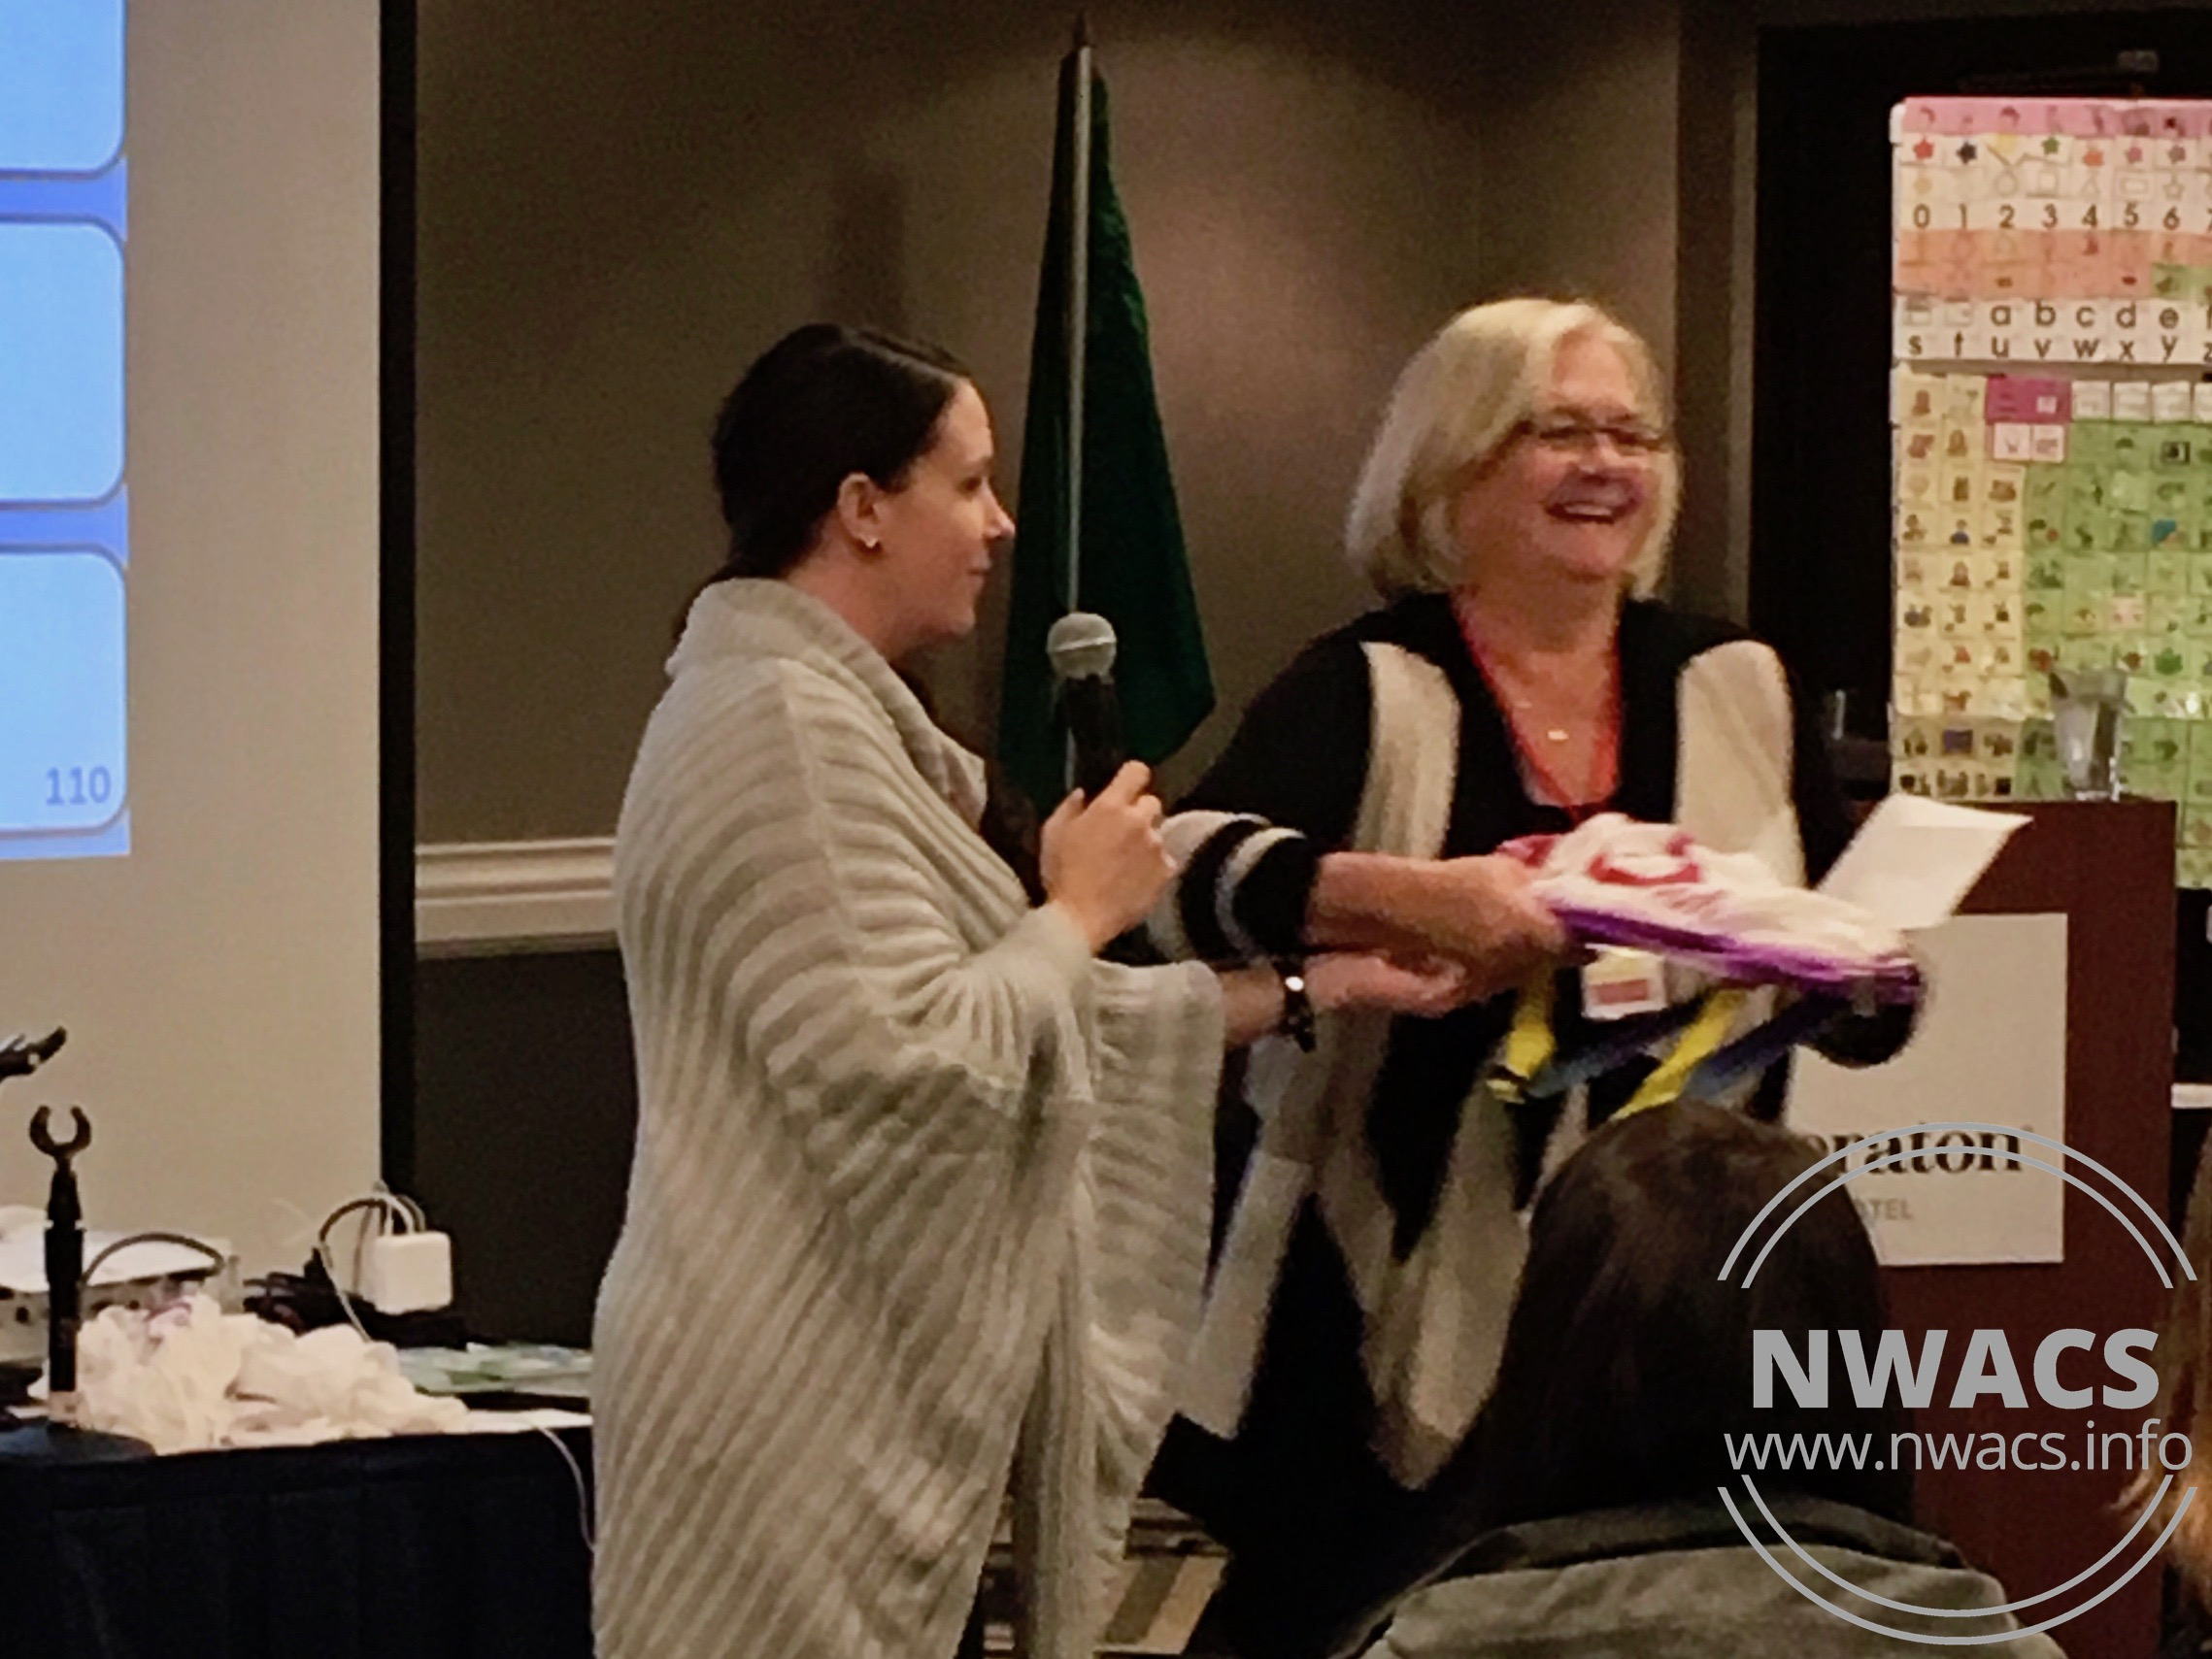 Thanks to our generous sponsors, we had several great door prizes again this year!